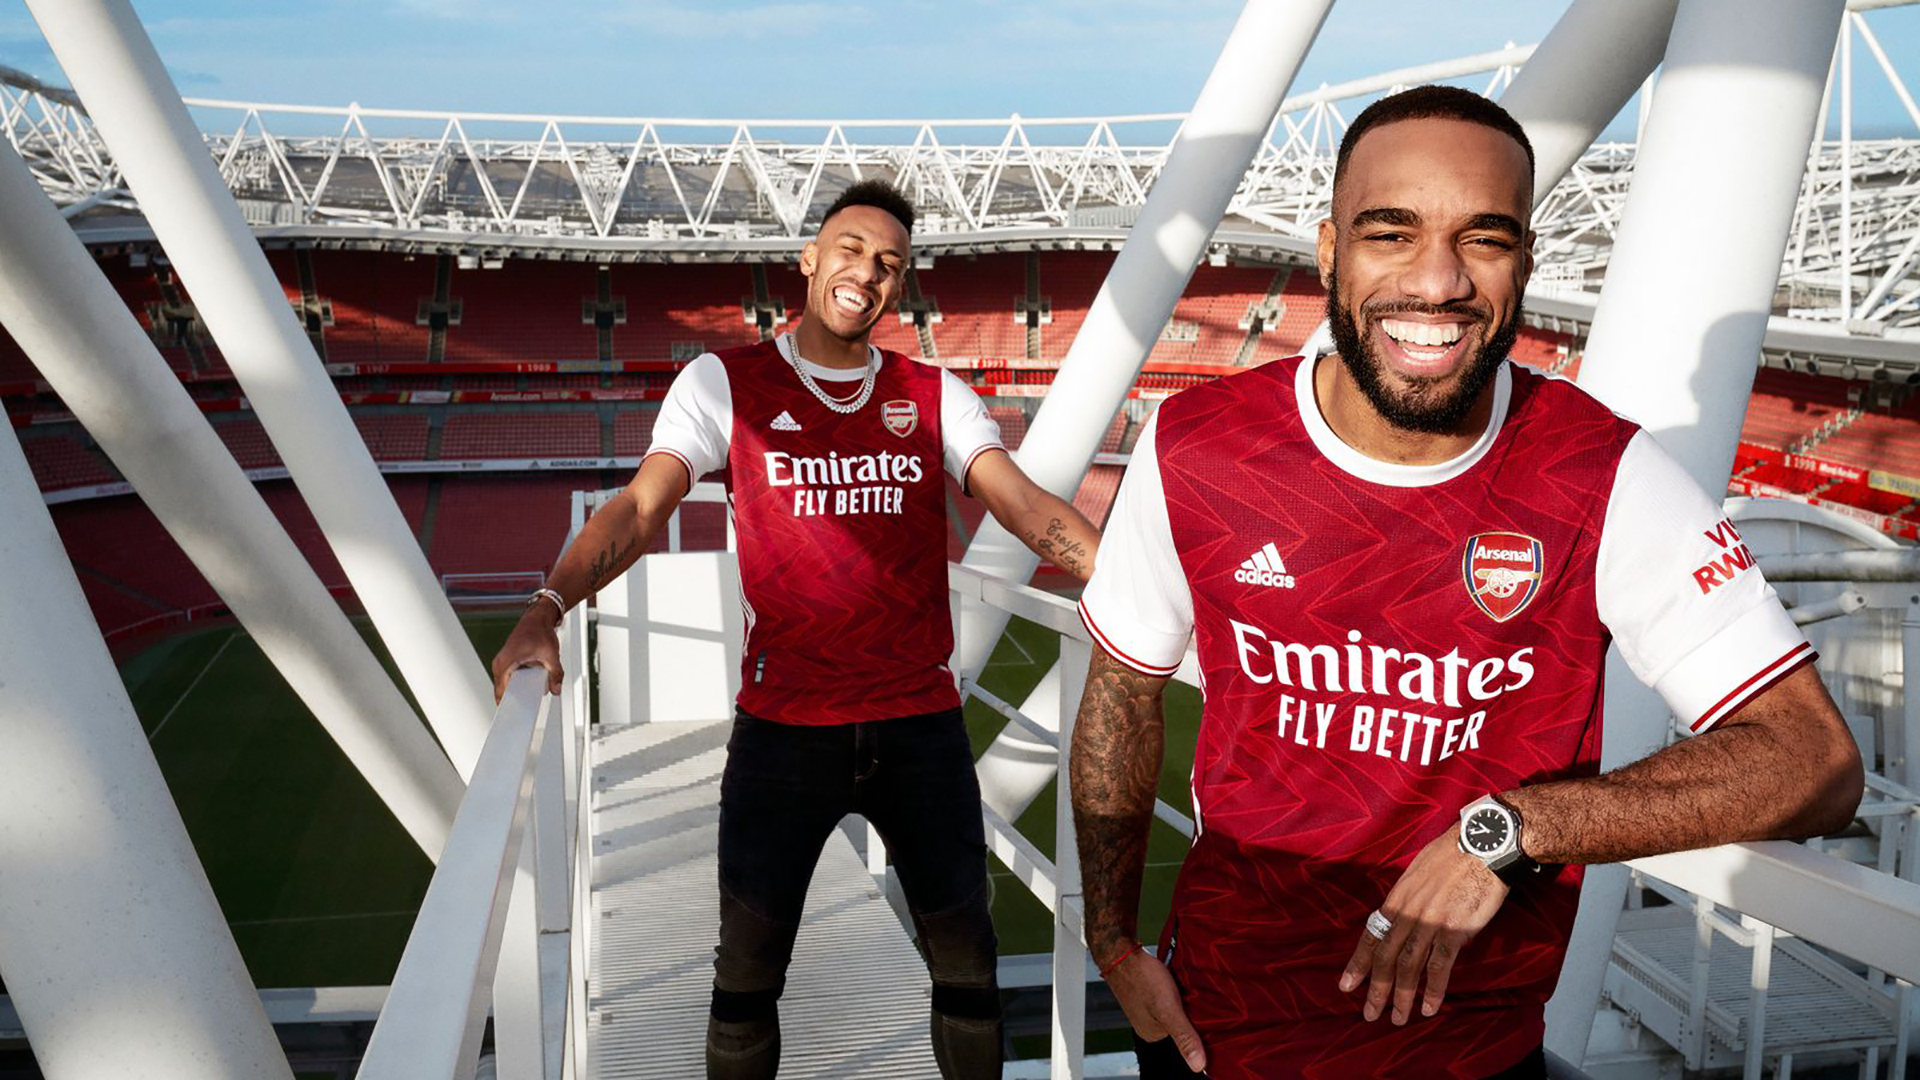 arsenal s 2020 21 kit new home and